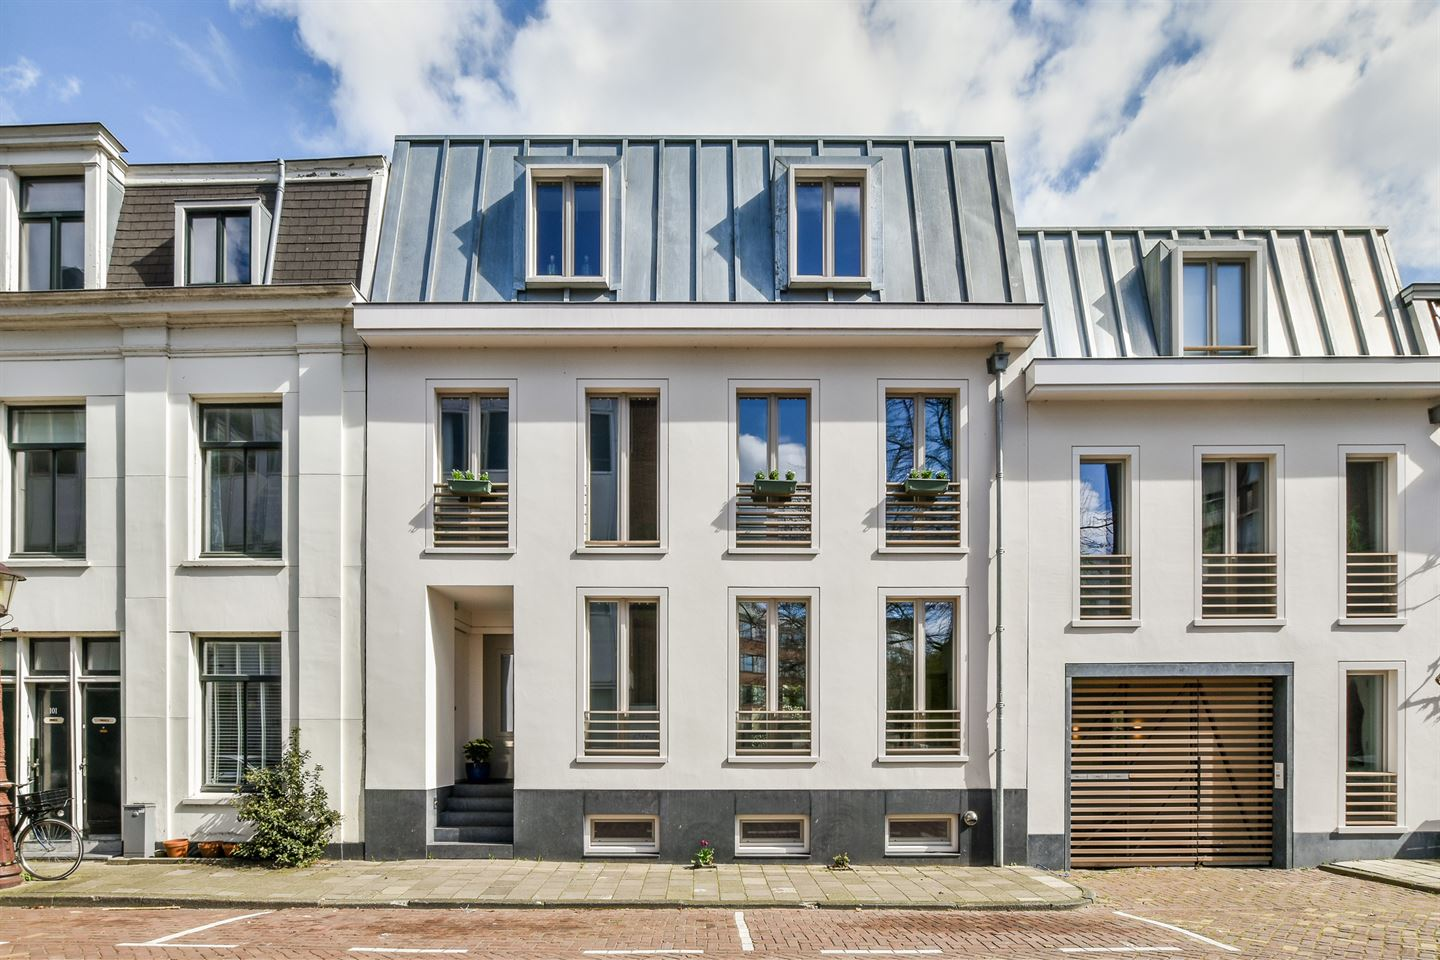 View photo 1 of Plantage Muidergracht 105 A